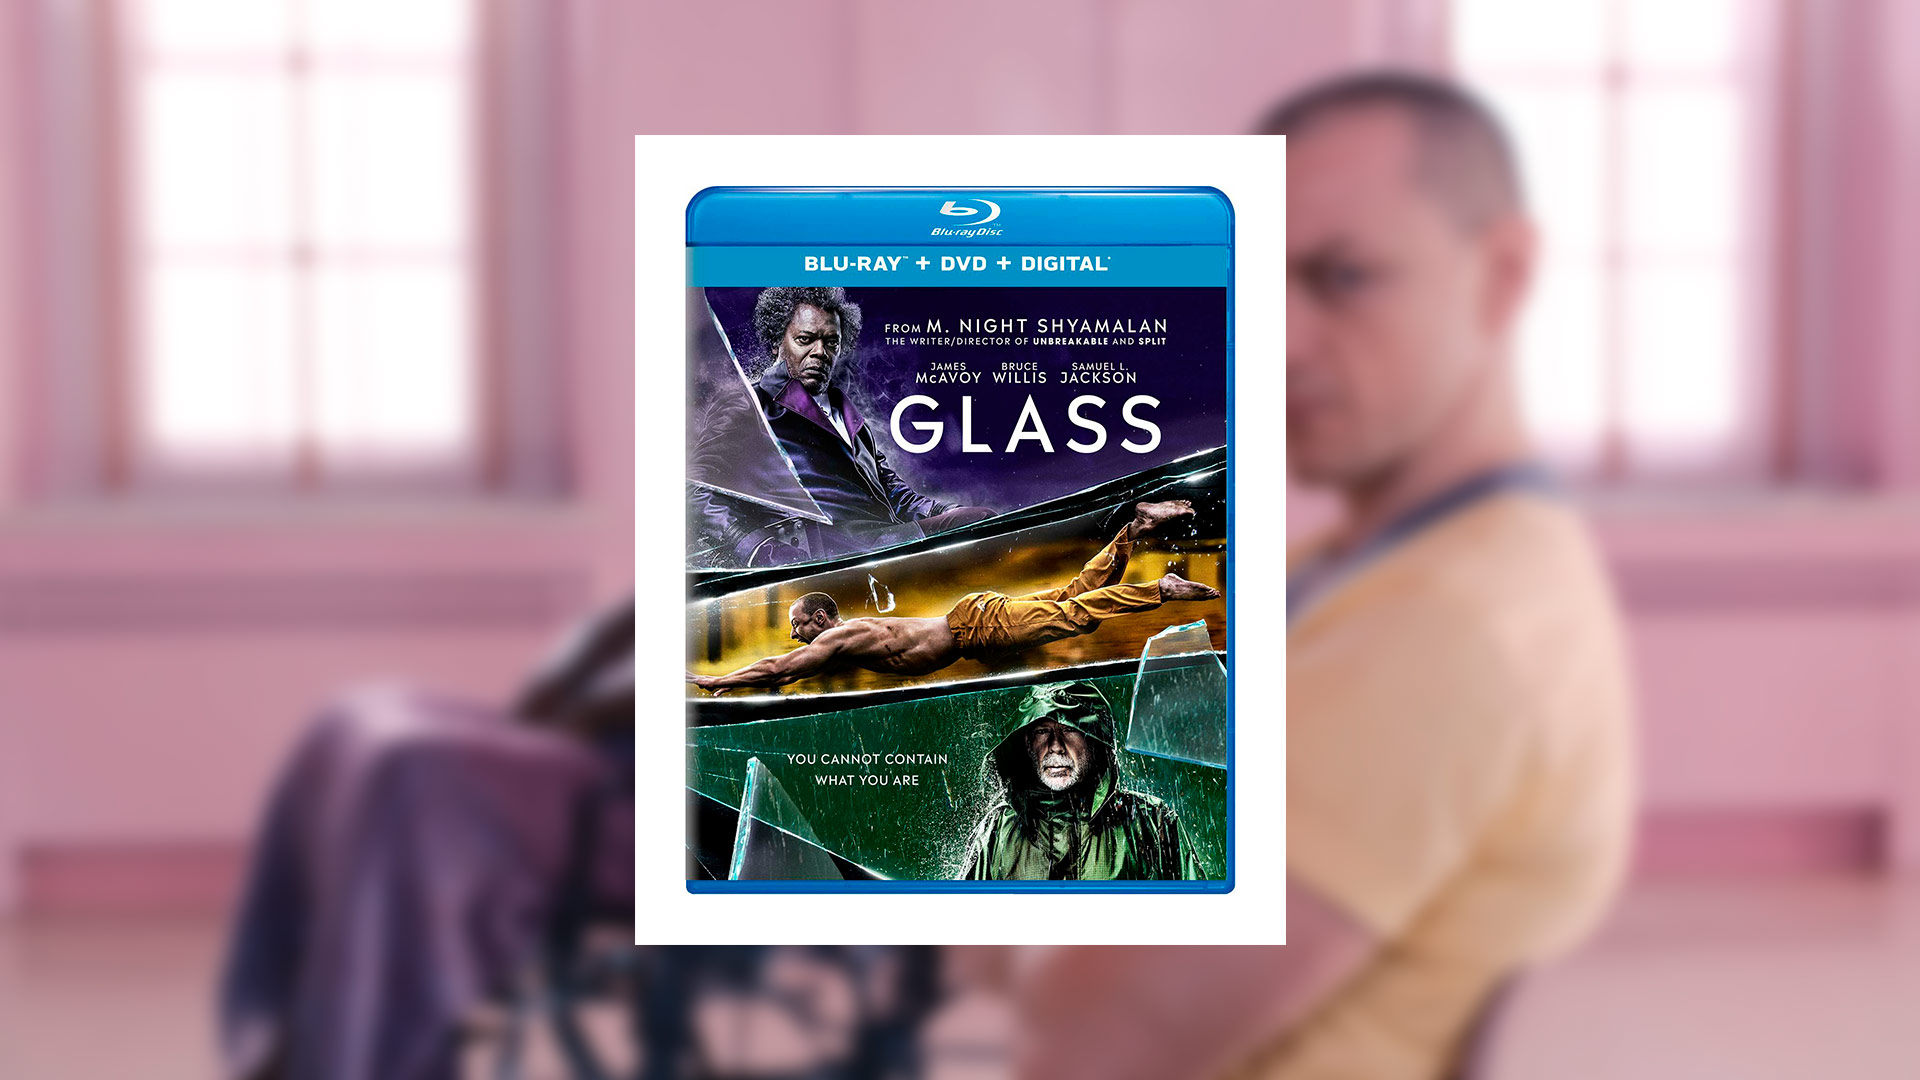 Glass – La fin de la trilogie de M. Night Shyamalan (Critique du Blu-Ray)